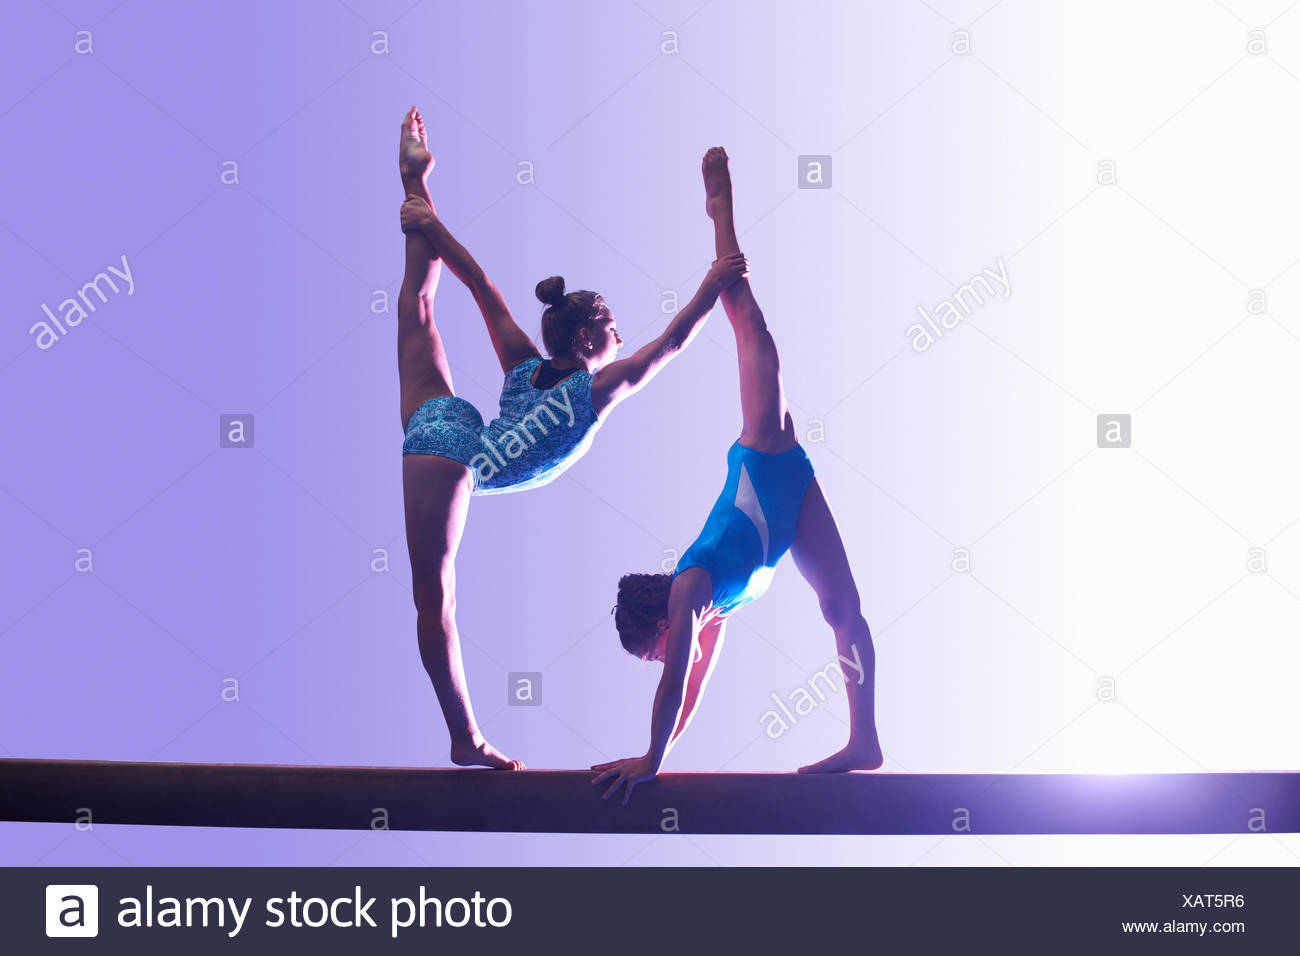 Two young gymnasts performing on balance beam - Stock Image